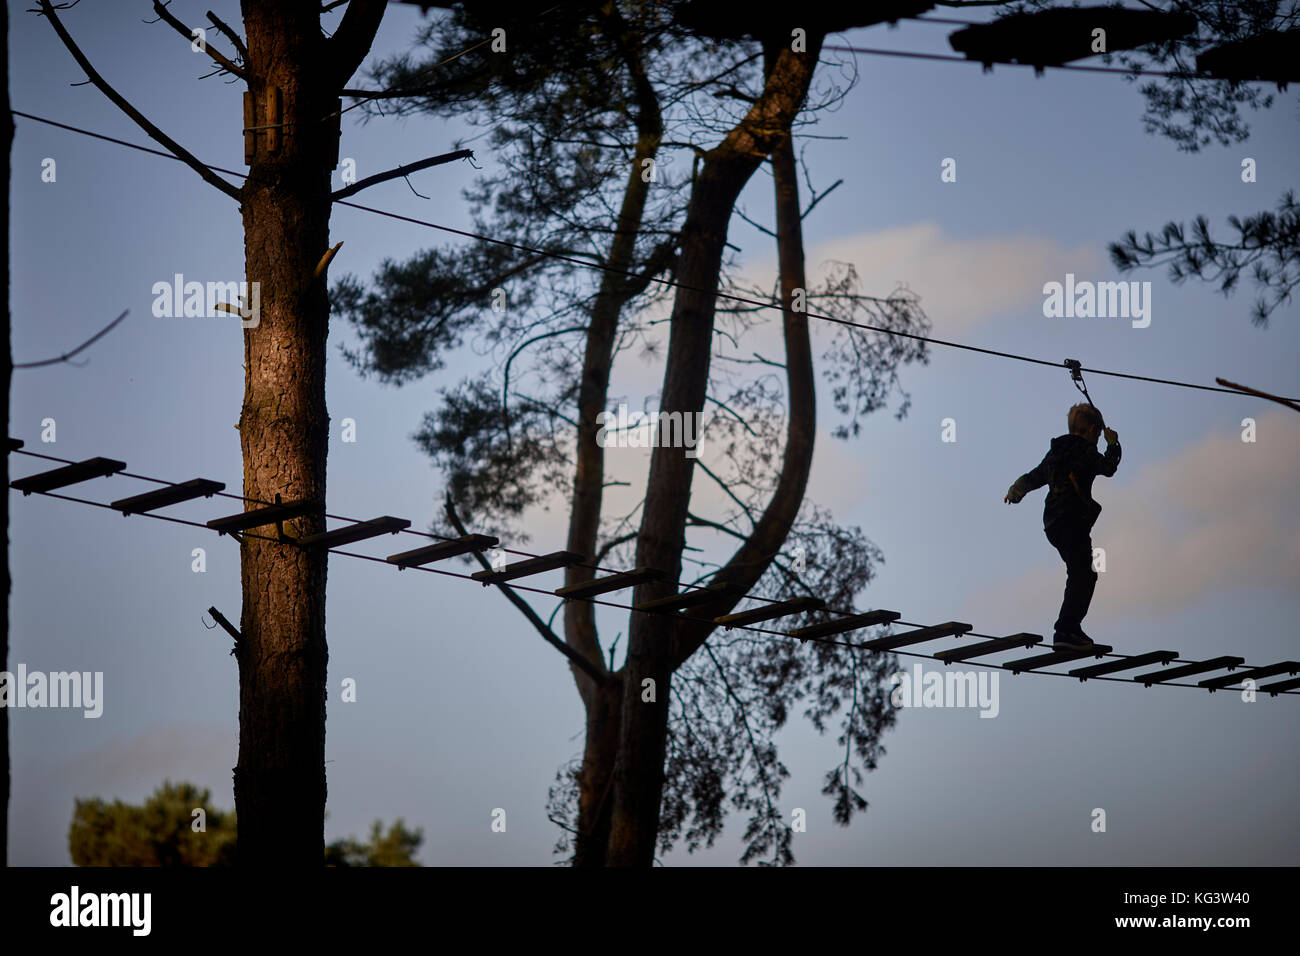 GoApe at Forestry Commission managed Delamere Forest Park  large wood near Frodsham, Cheshire, England. - Stock Image